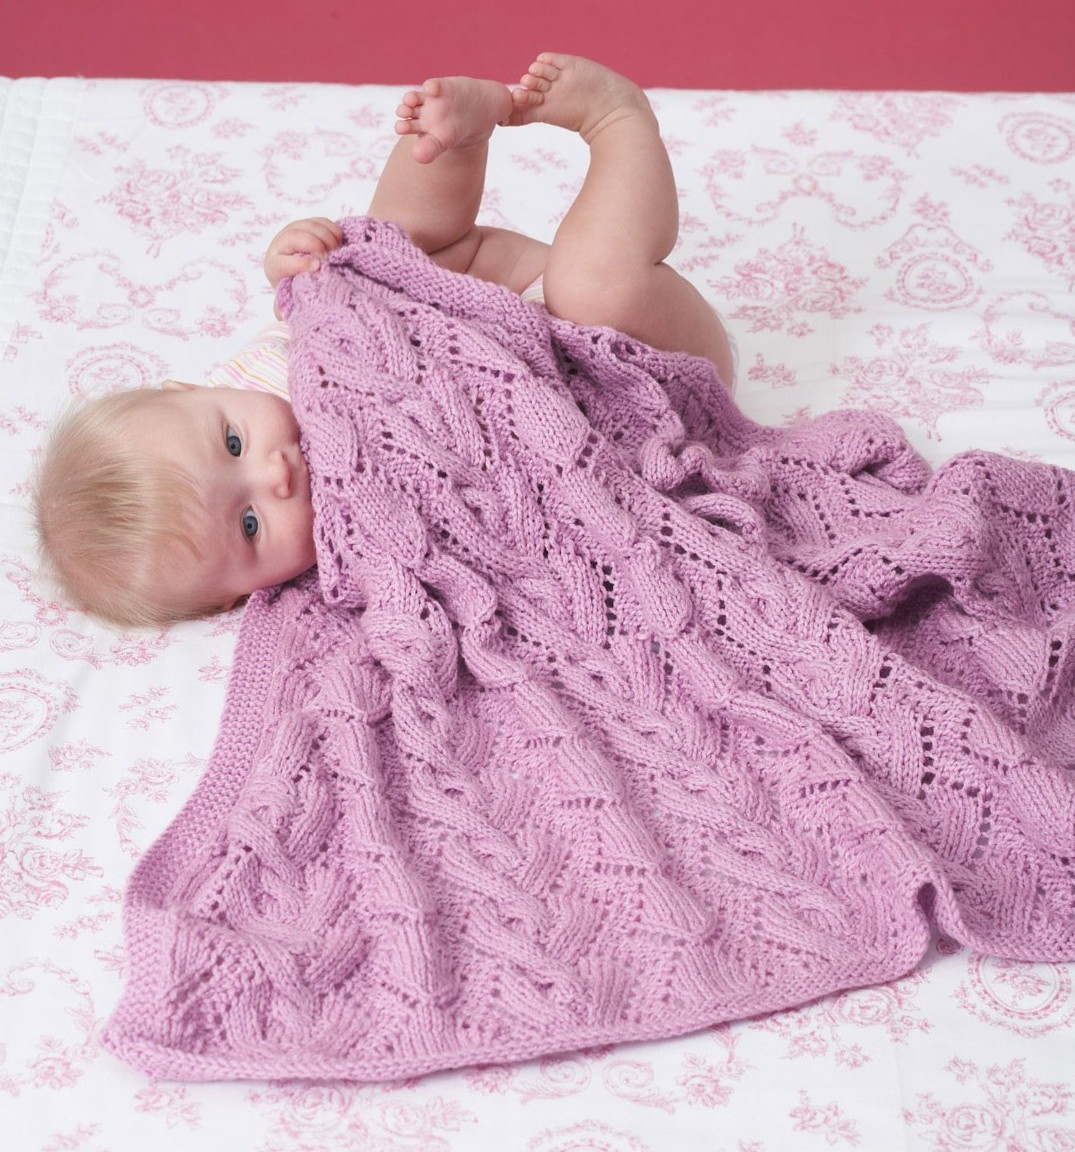 Free Knitting Patterns For Baby Blankets Awww Some Ba Blanket Knitting Patterns In The Loop Knitting